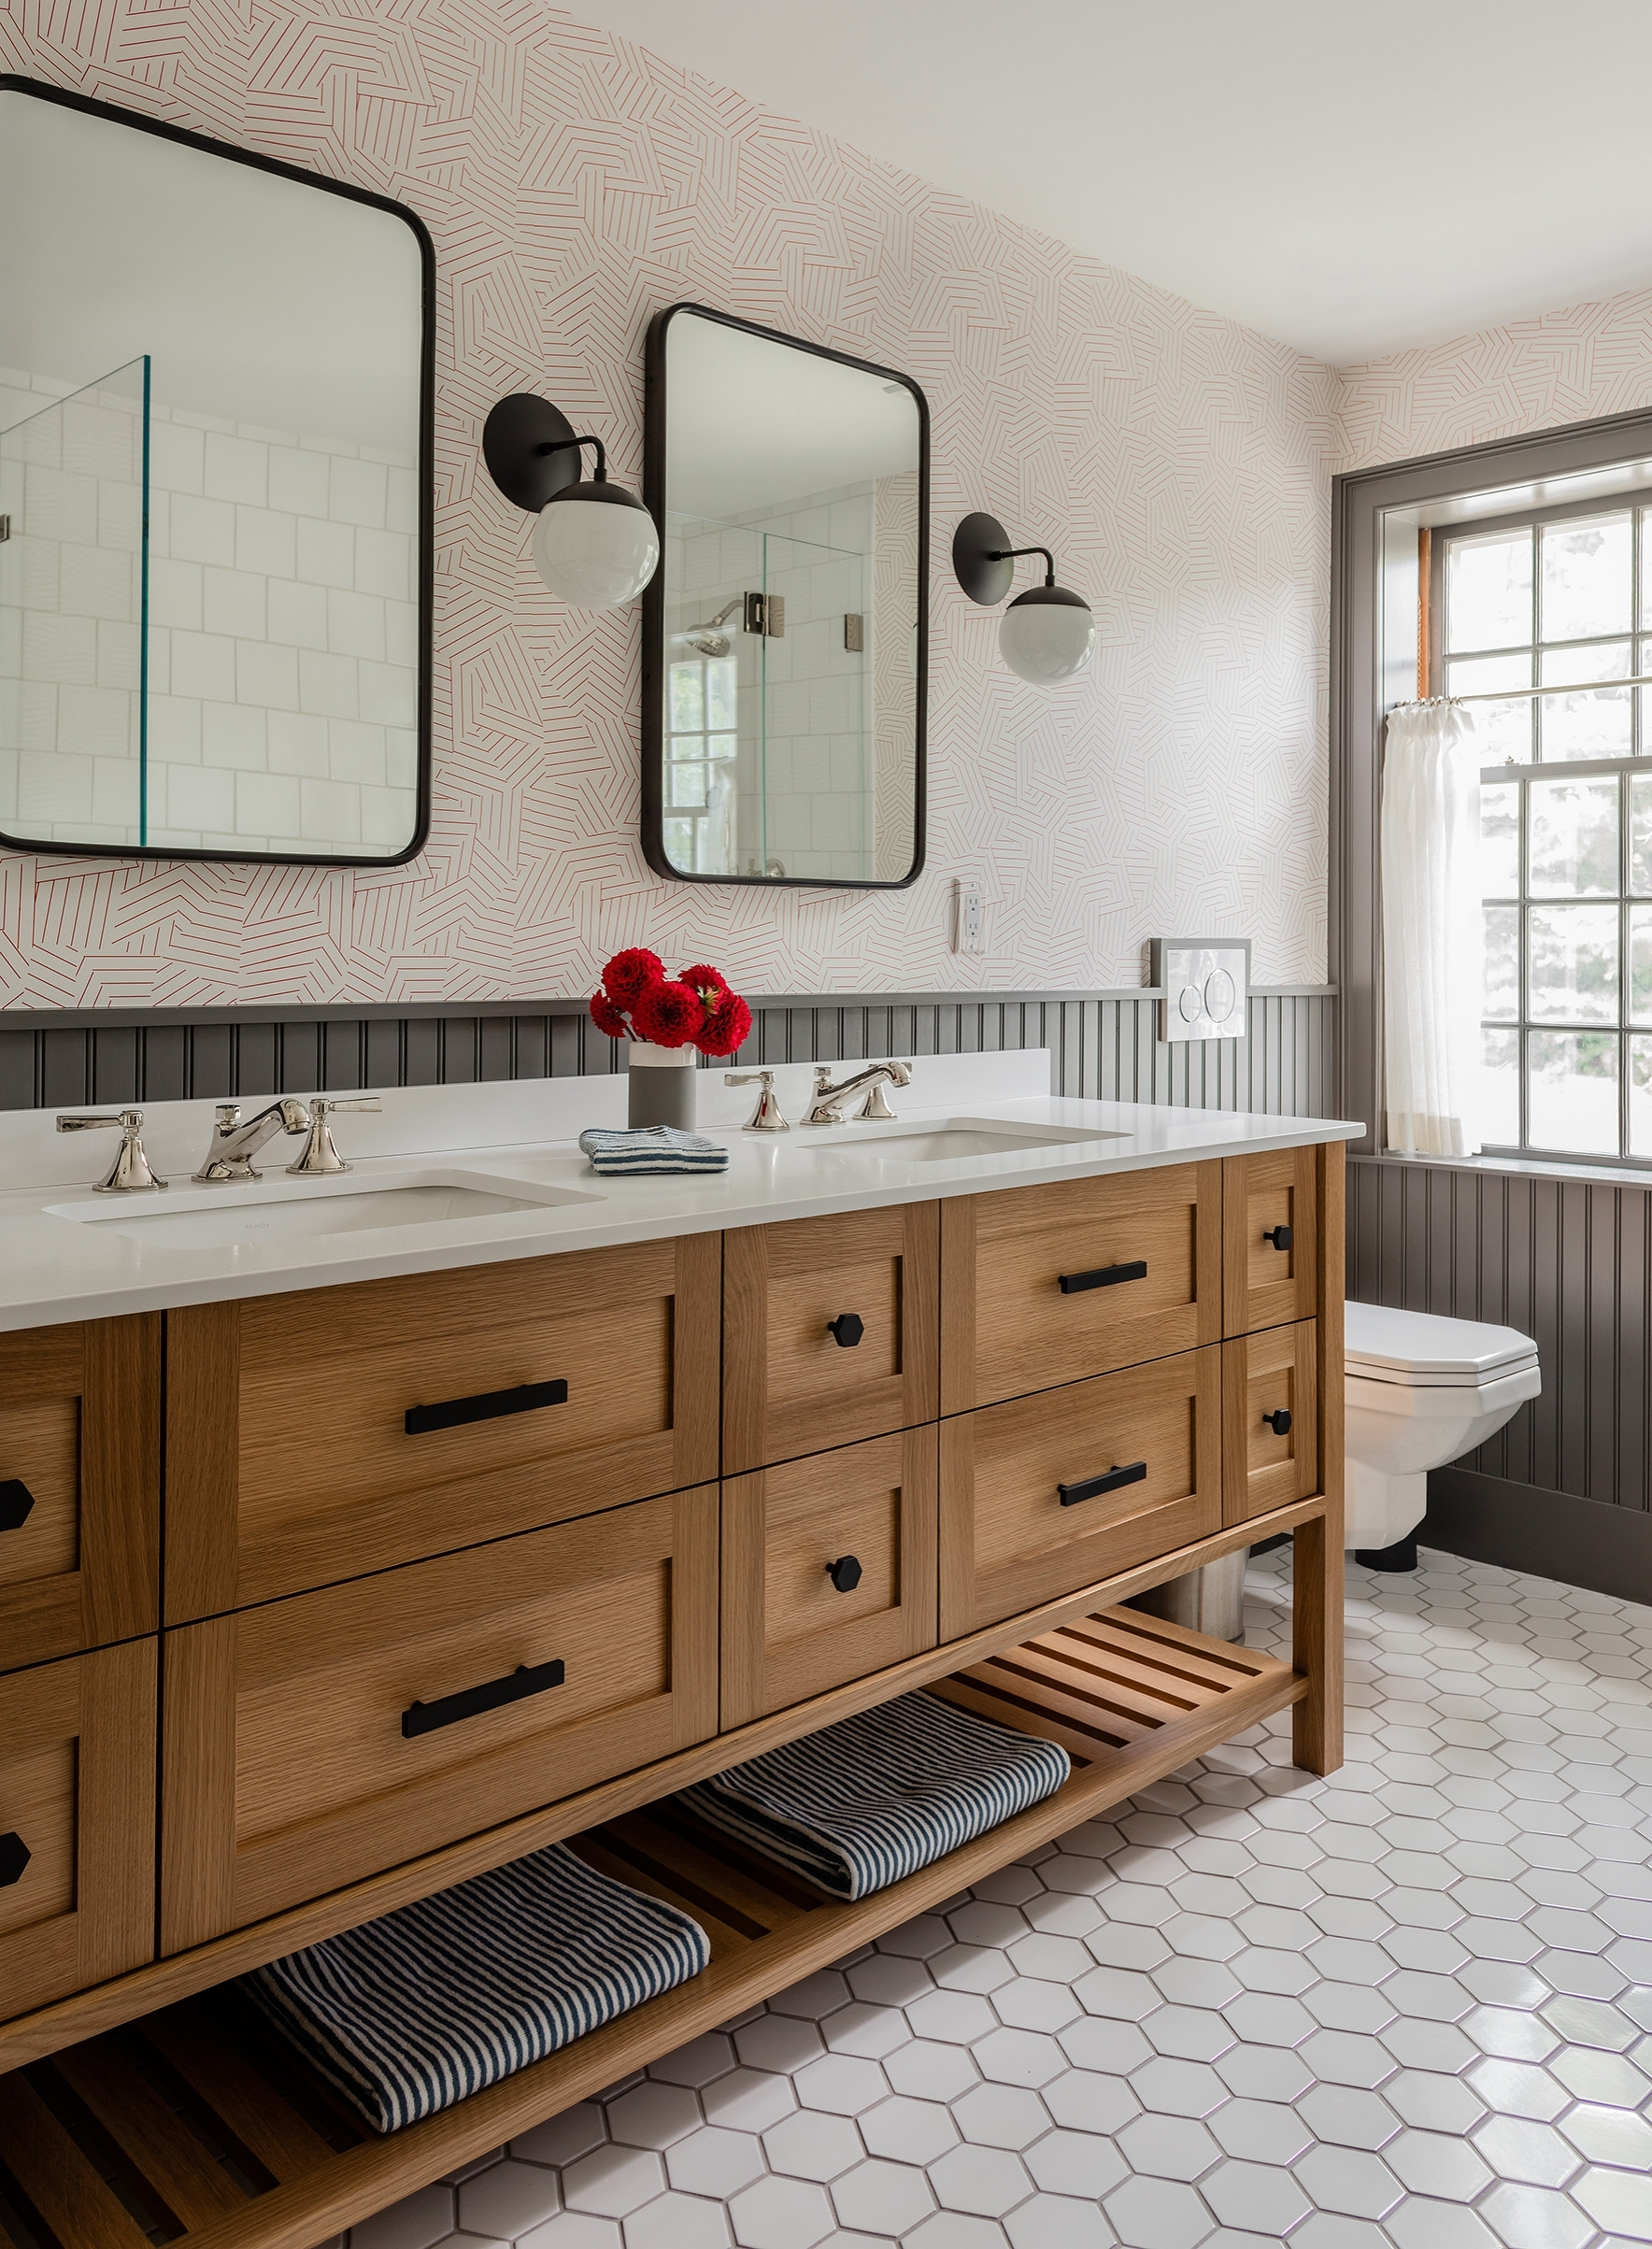 75 Beautiful Wall Paneling Bathroom Pictures & Ideas Small Bathroom Panelling